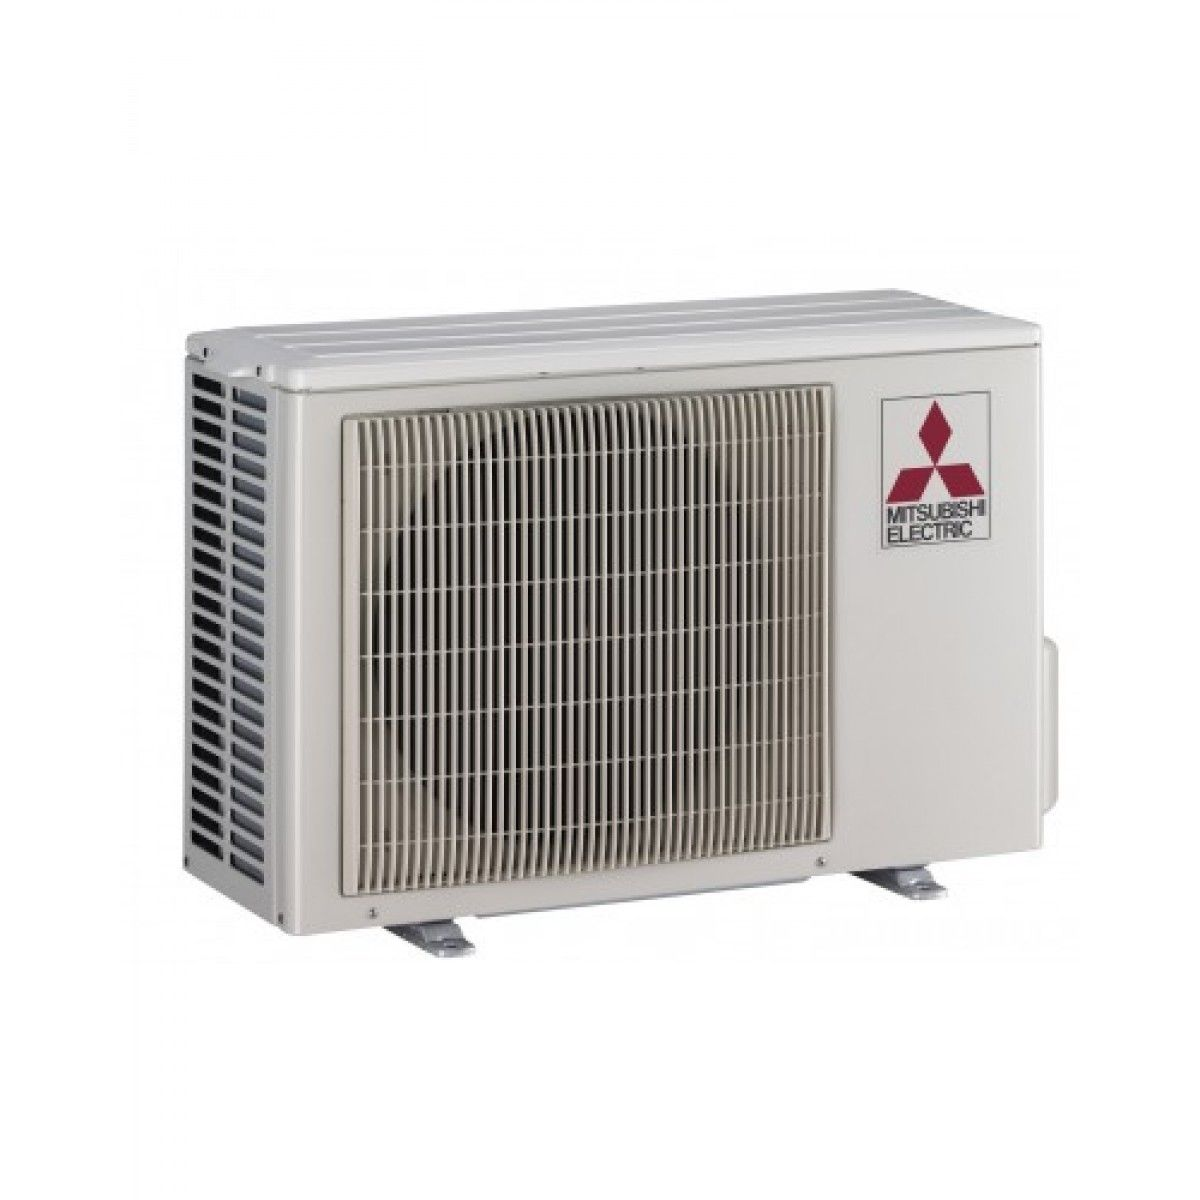 mitsubishi 15k btu 21 6 seer cooling only system mitsubishi ductless air conditioners. Black Bedroom Furniture Sets. Home Design Ideas